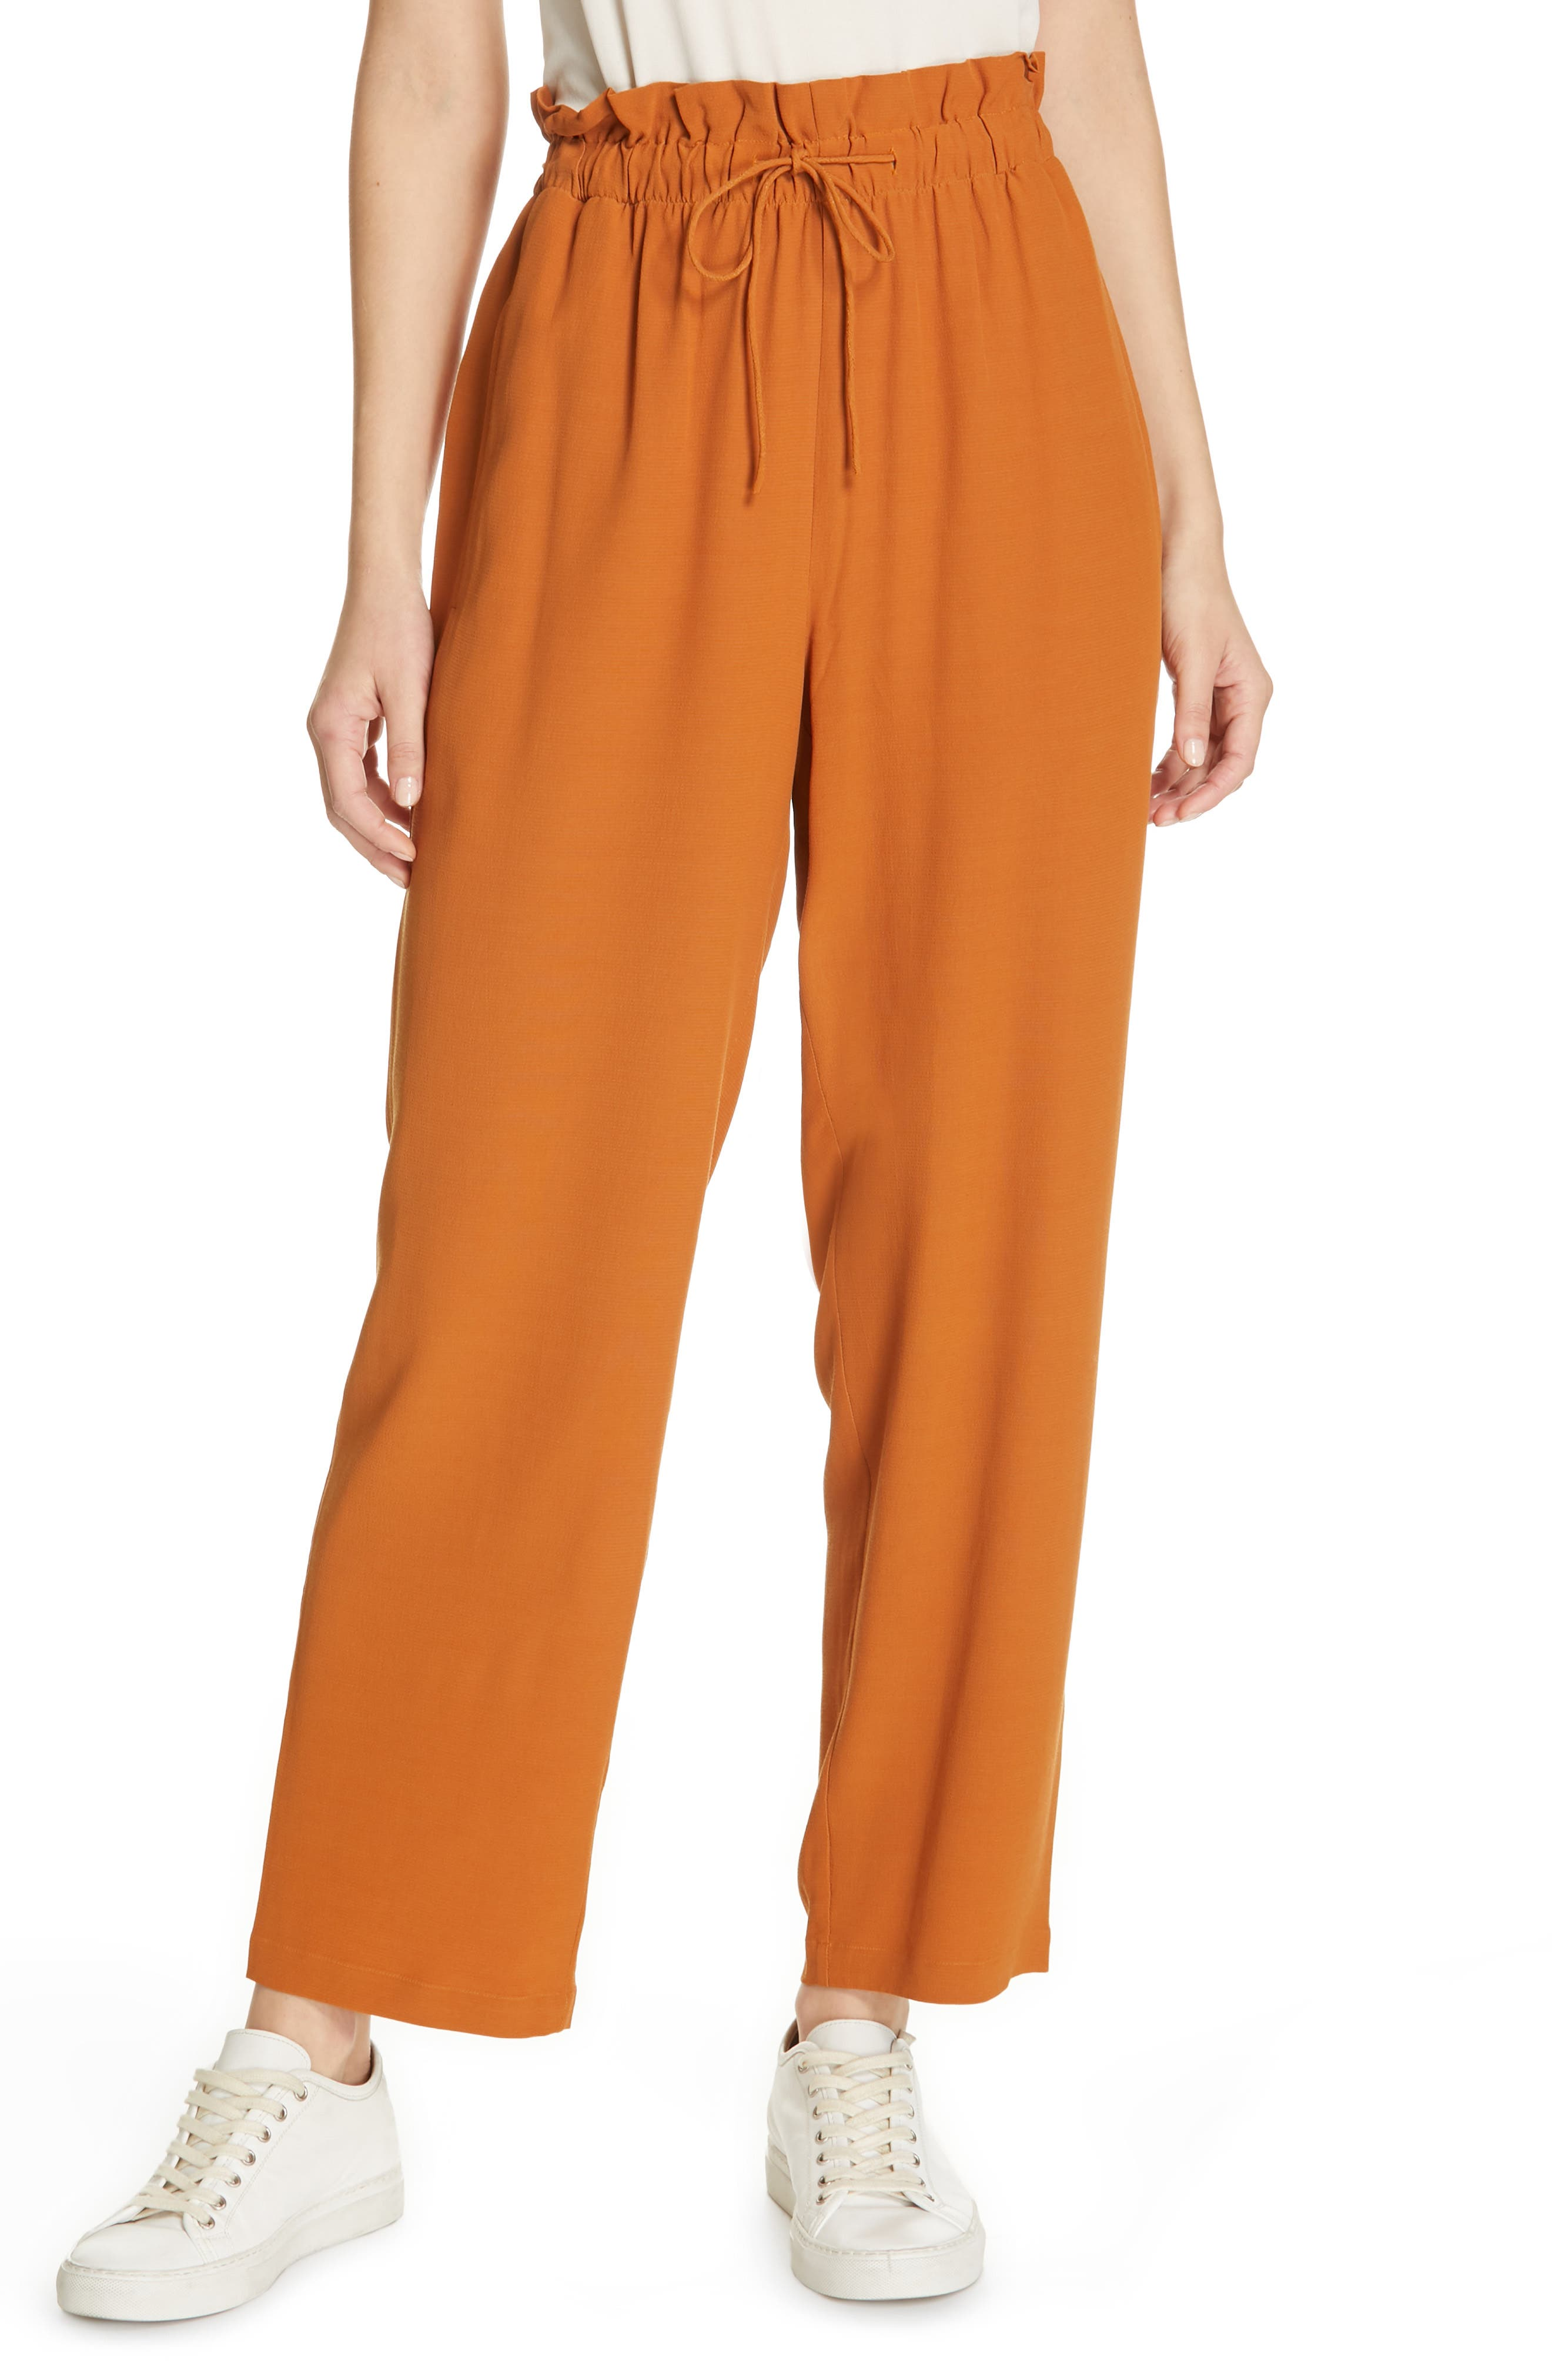 EILEEN FISHER Crepe Pants, Main, color, MUSK